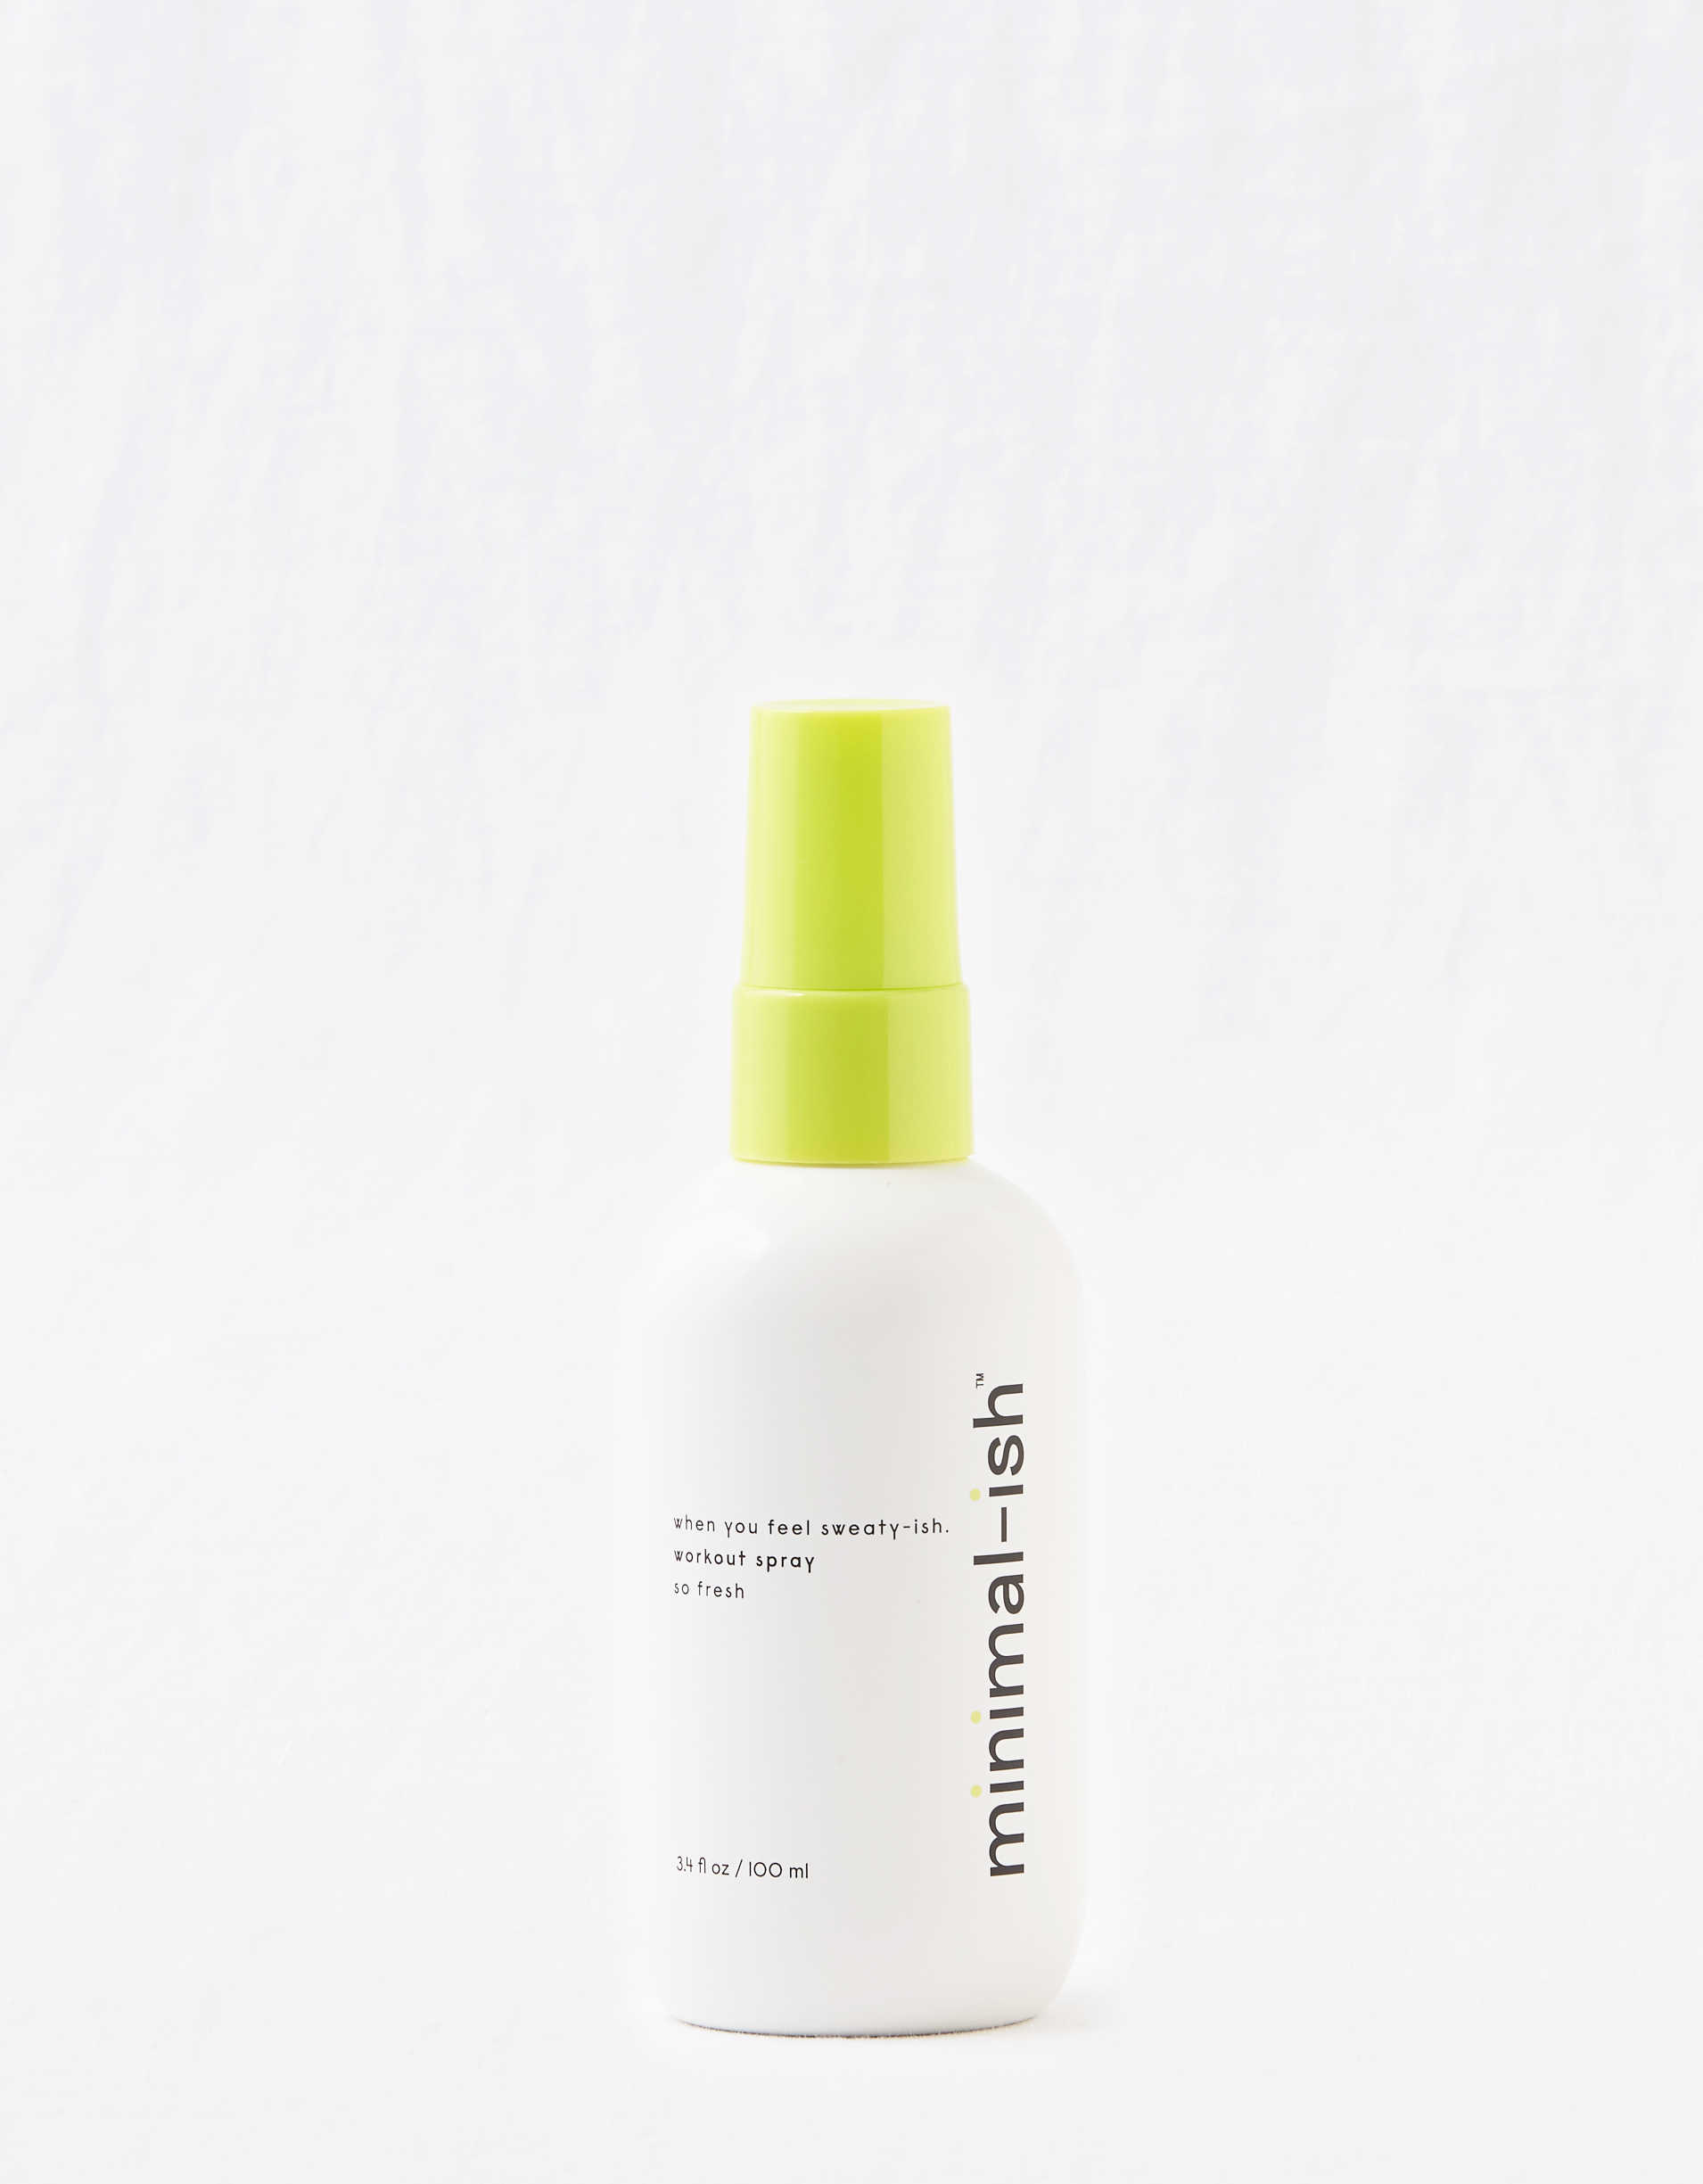 Minimal-ish Workout Spray